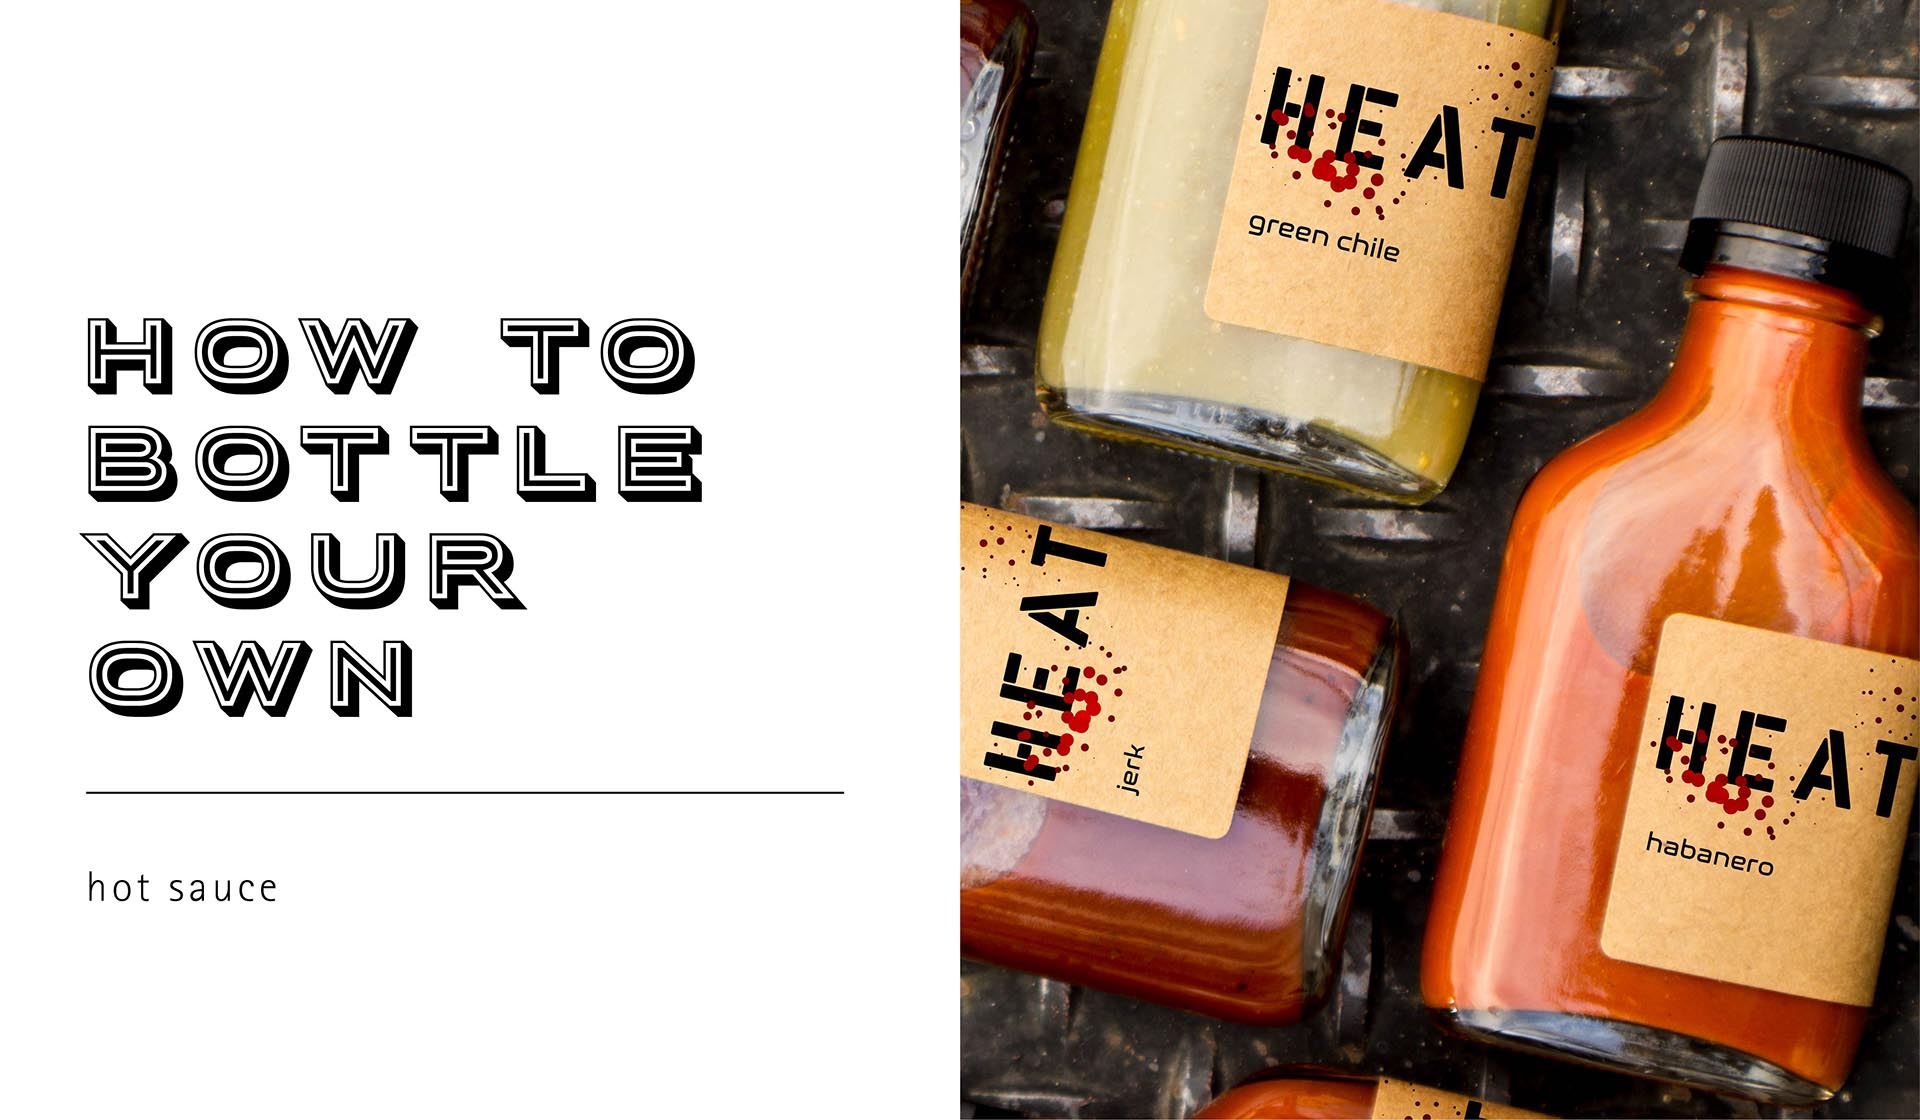 How To Bottle Your Own Hot Sauce